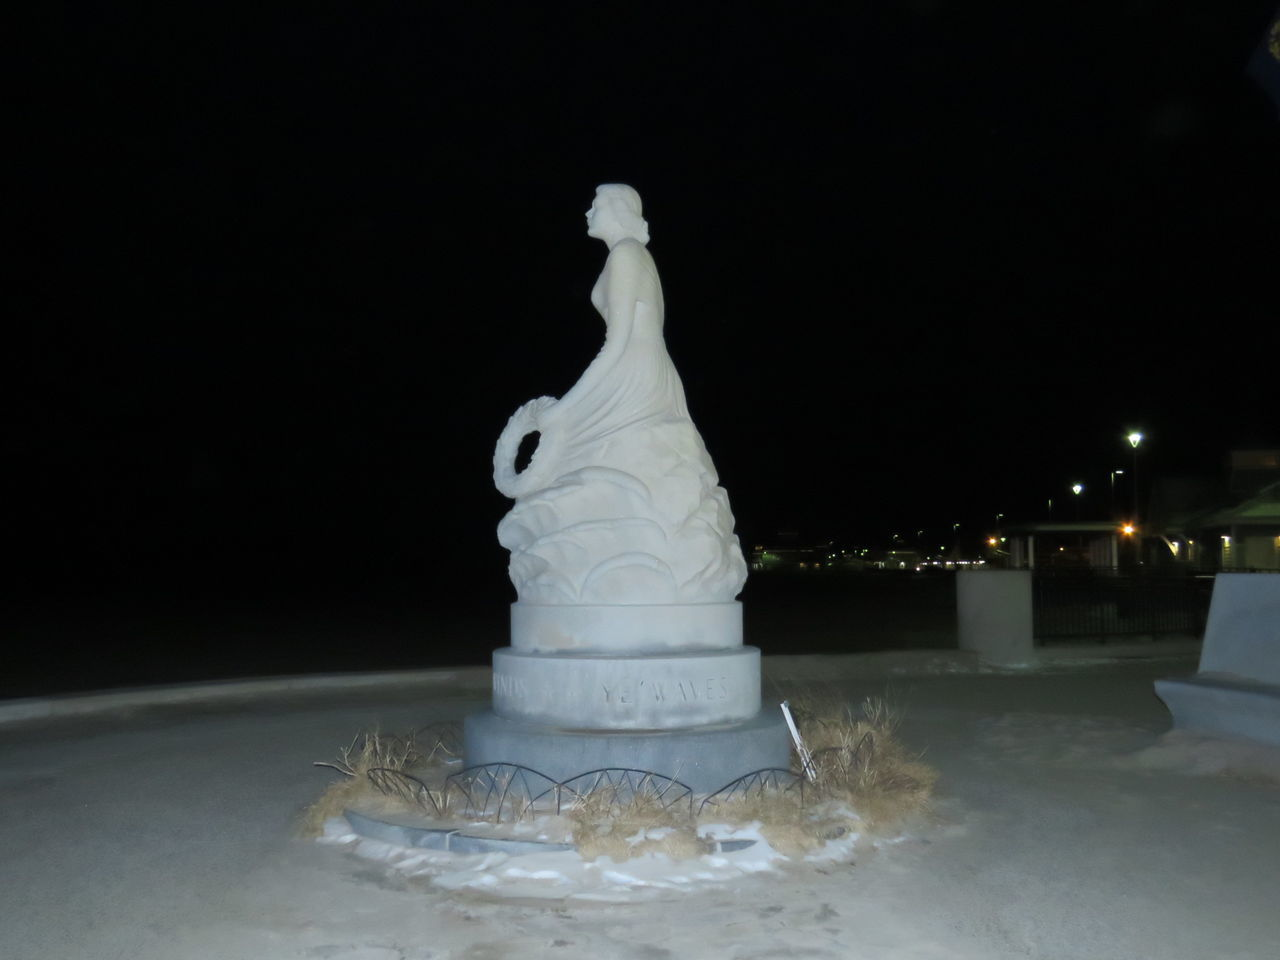 Woman waiting for her husband to come home from the sea Black Background City Lights By Night Close-up Hampton Beach Human Representation Men Lost At Sea Nighttime Photography No People Sea The City Light Widow Woman Statue